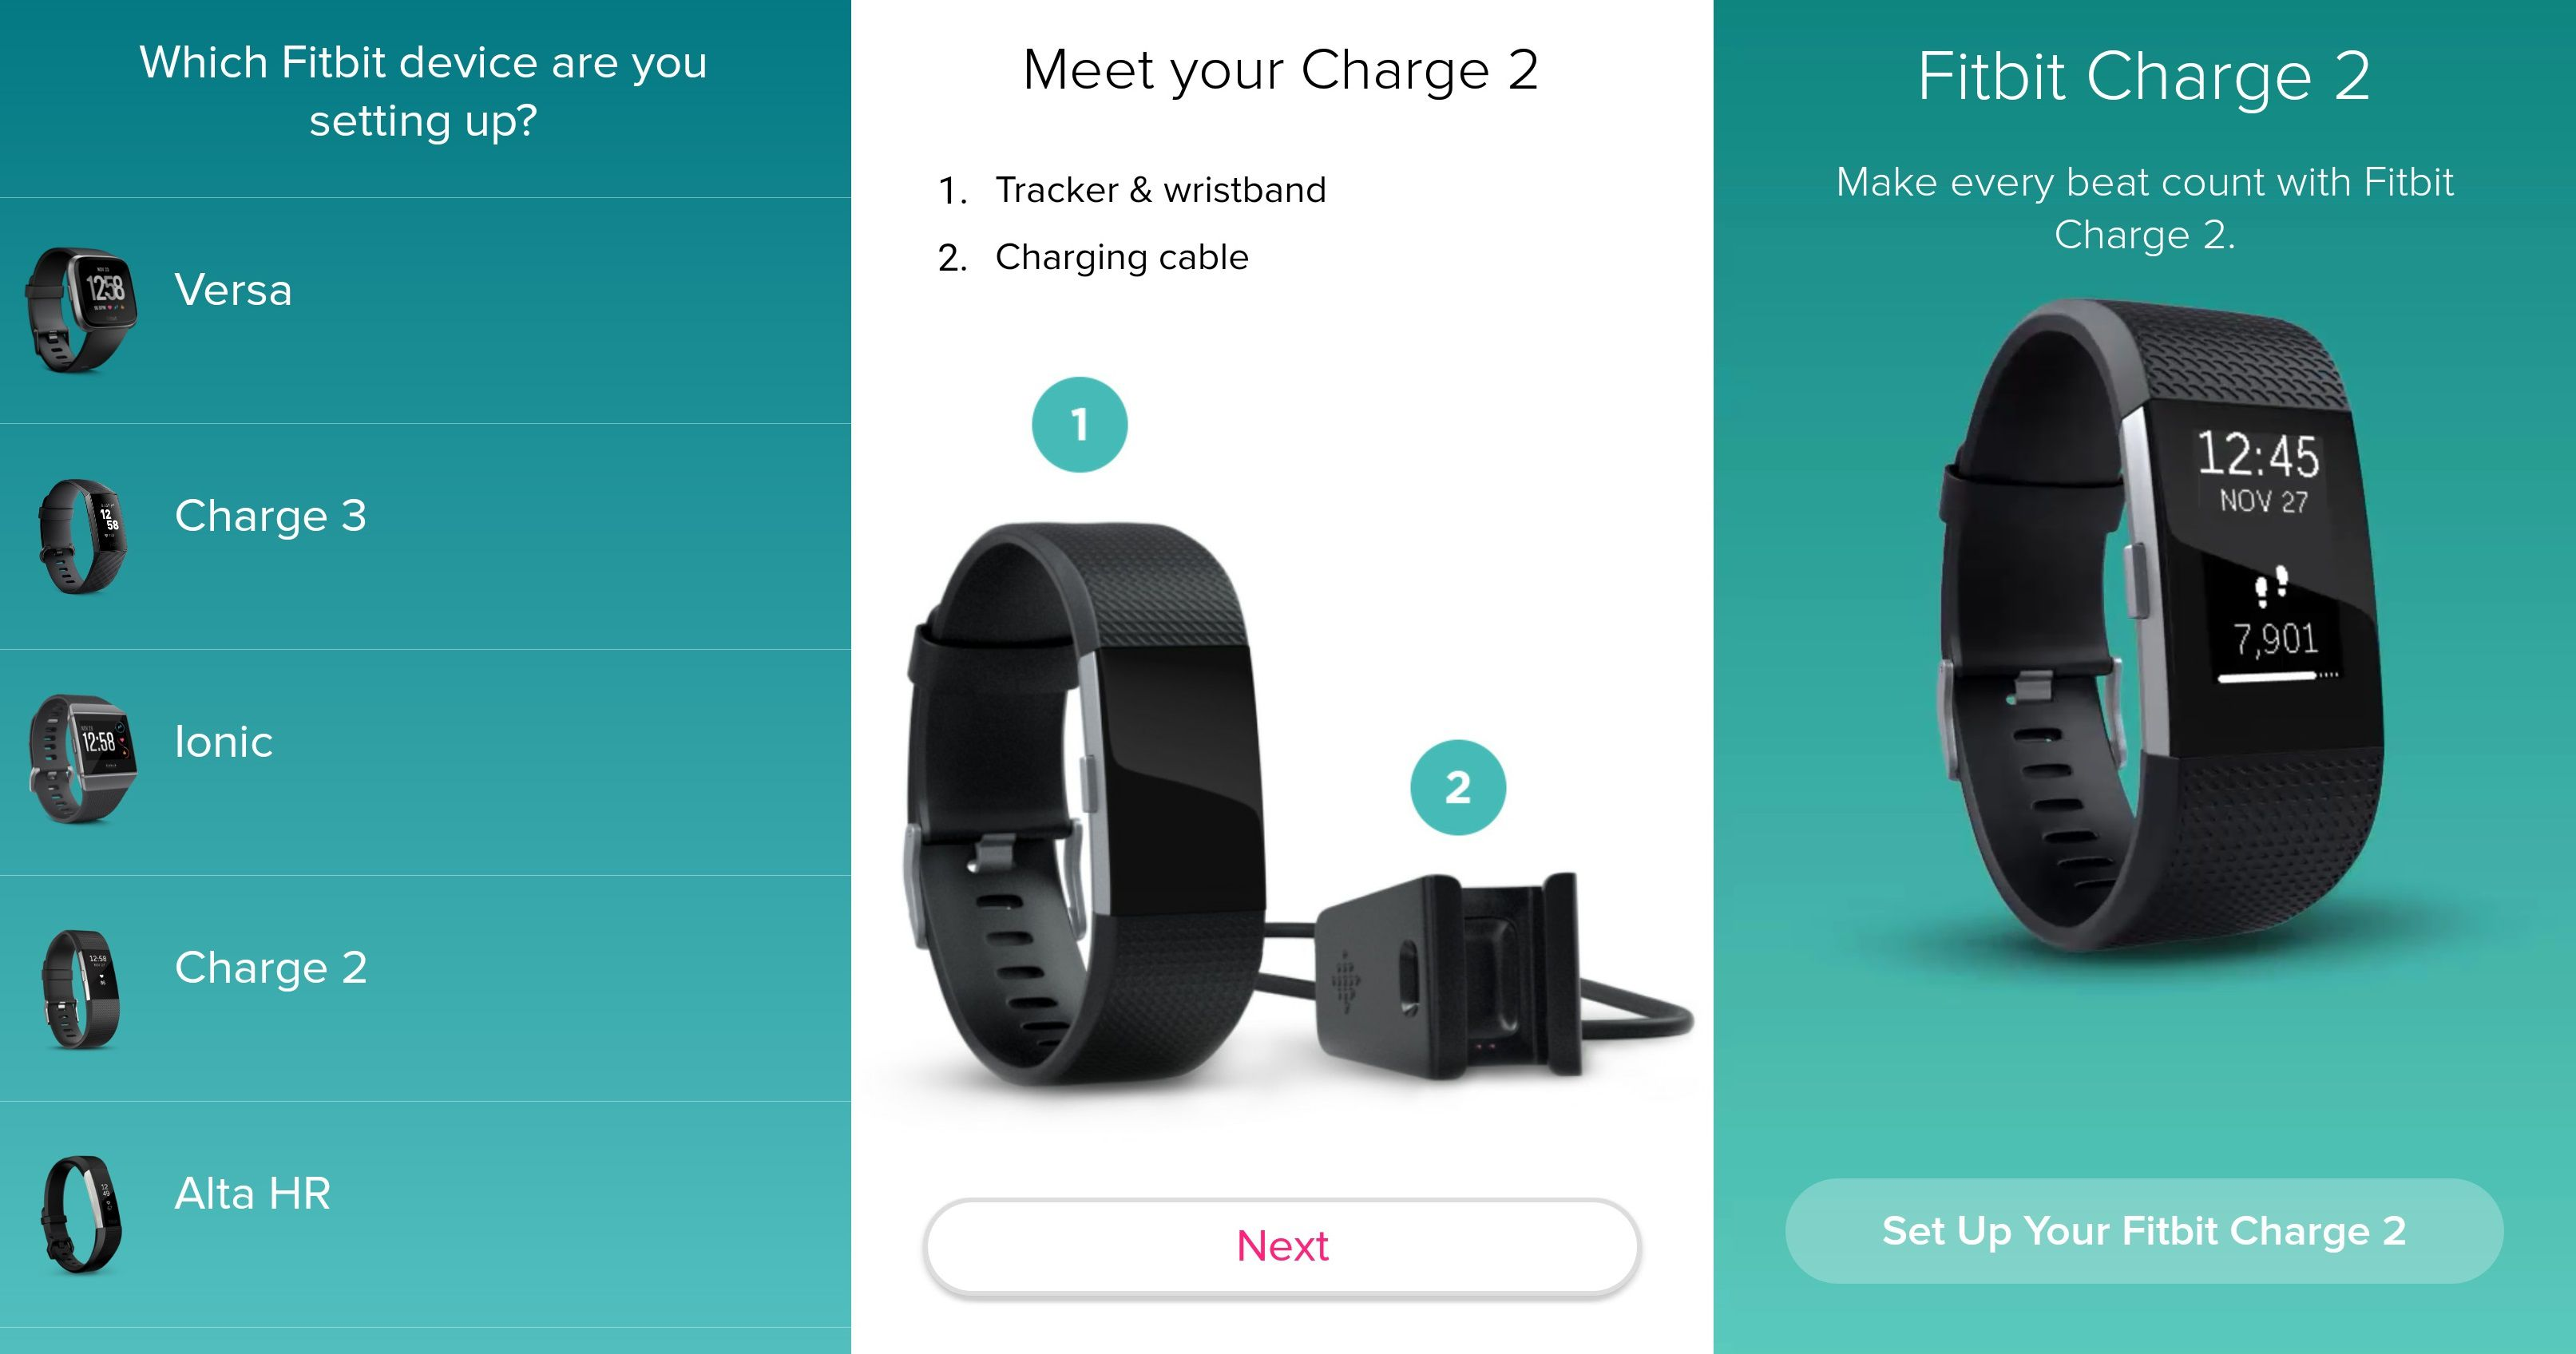 How to Set Up Your Fitbit Charge 2